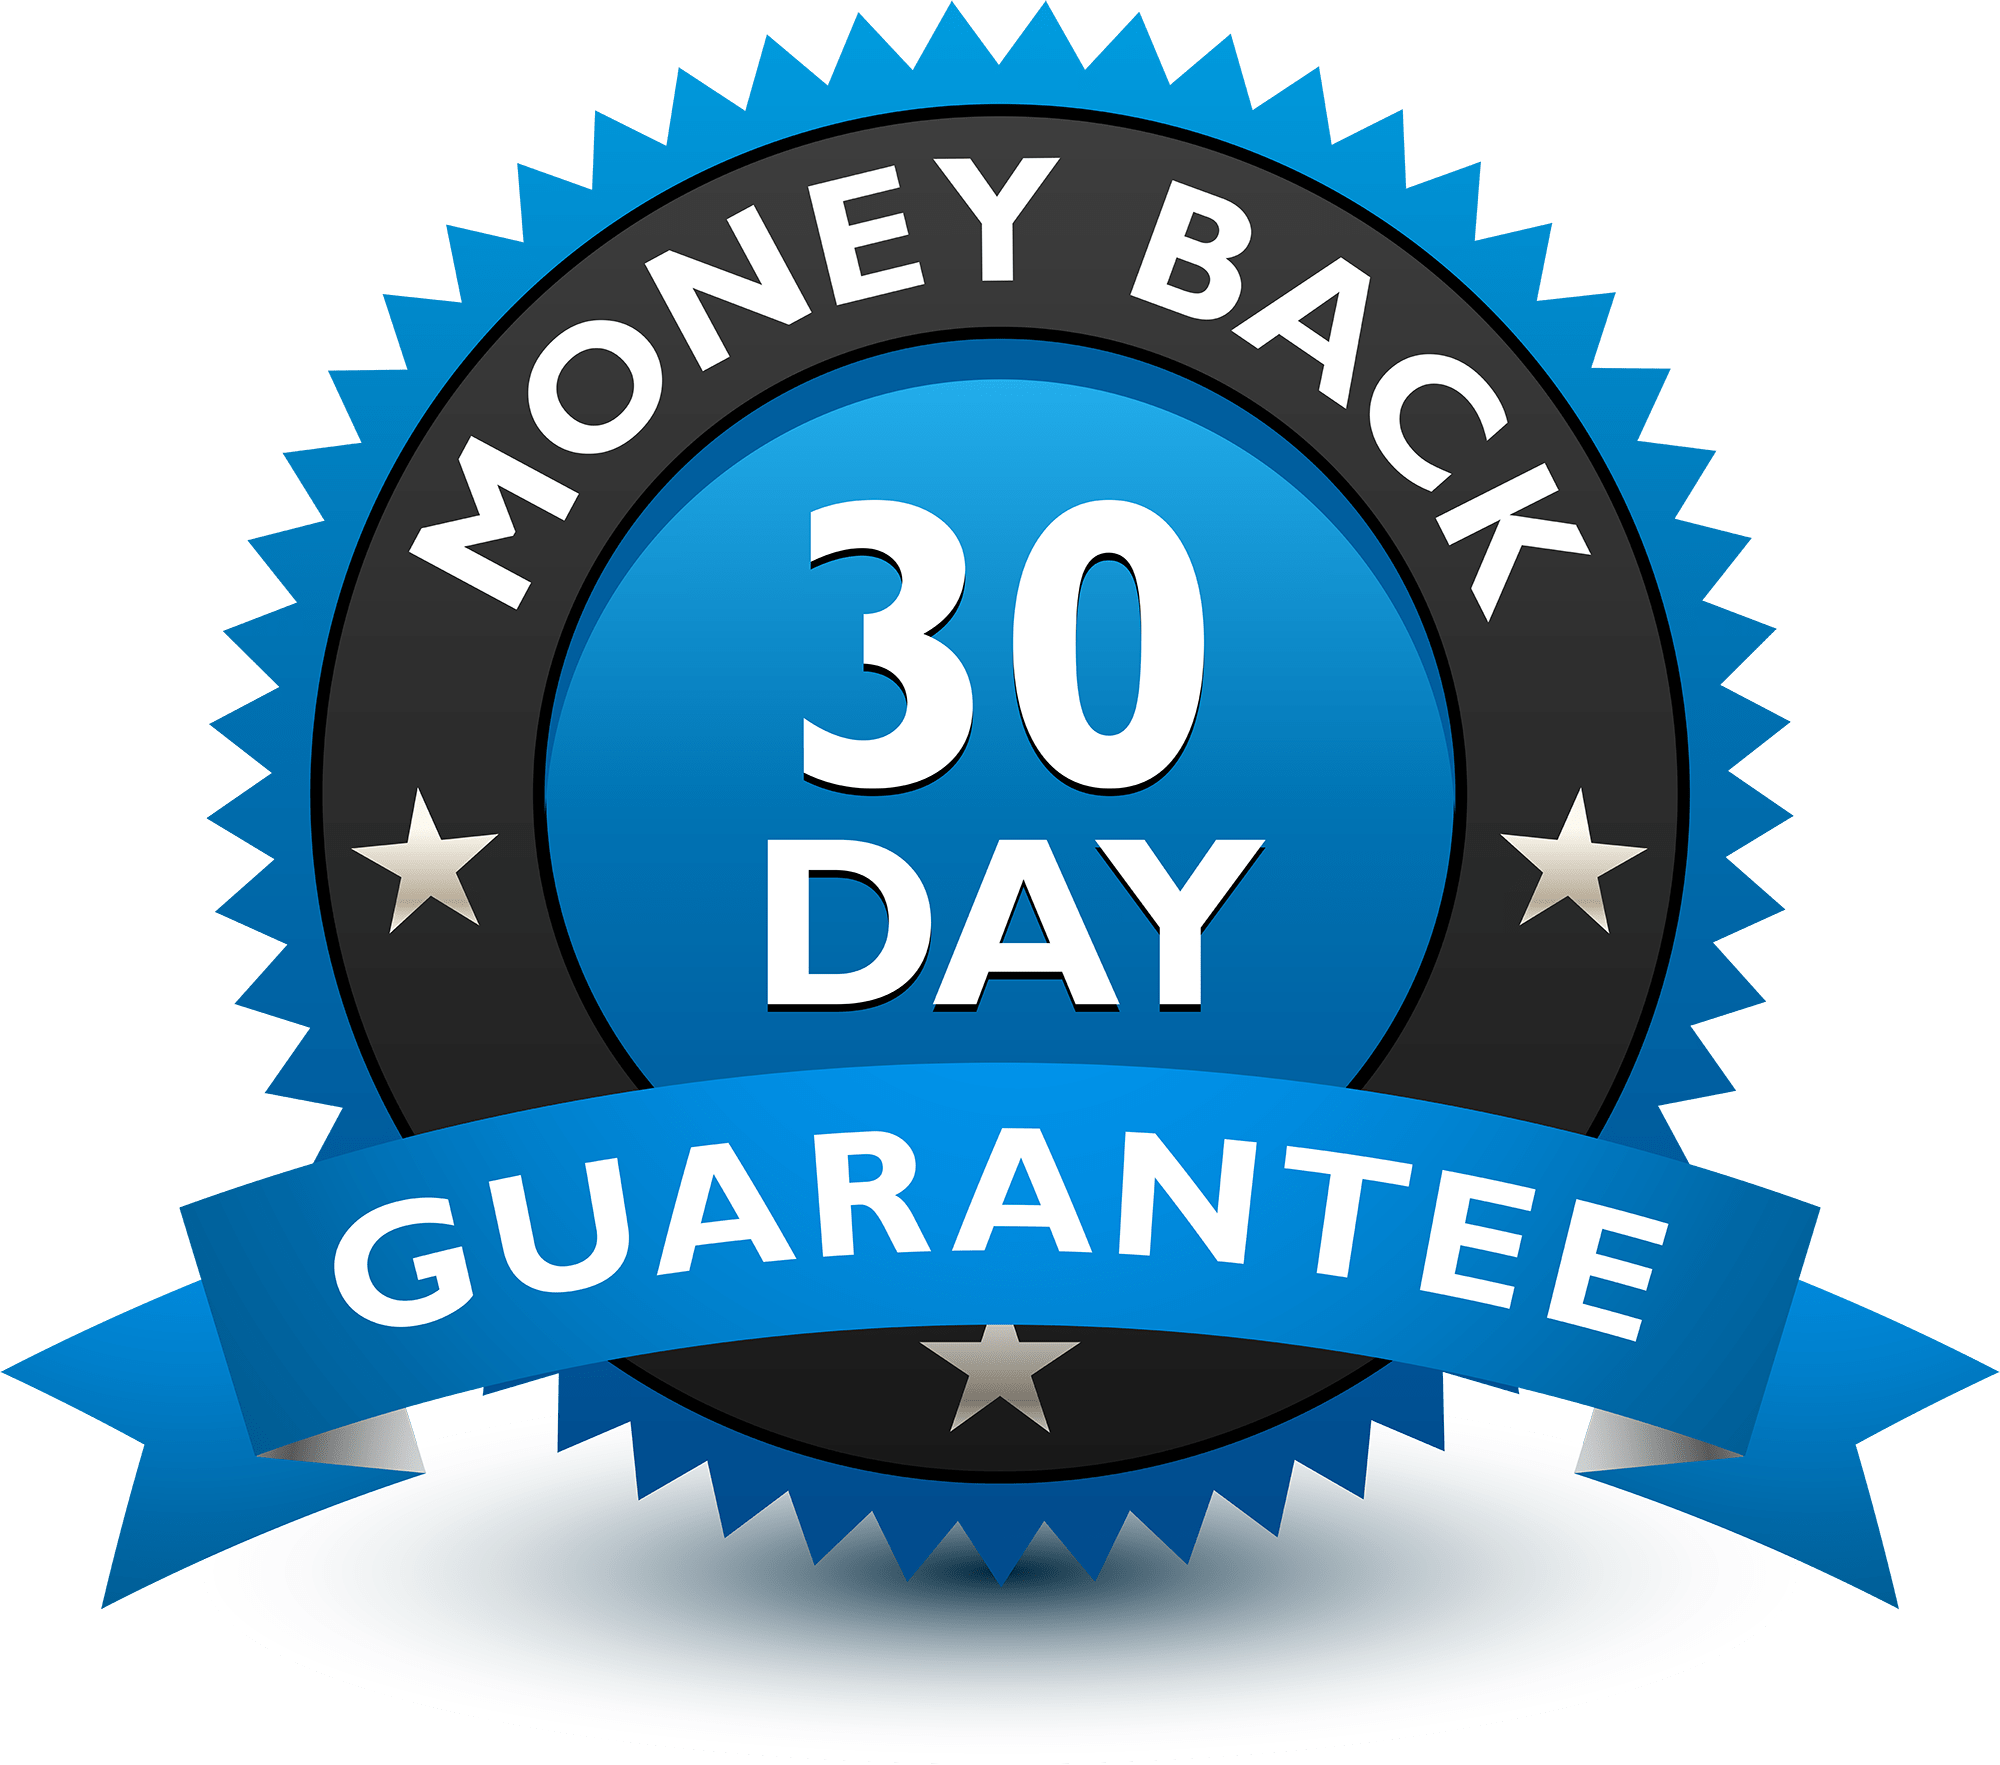 Our radon agency offers a money back guarantee